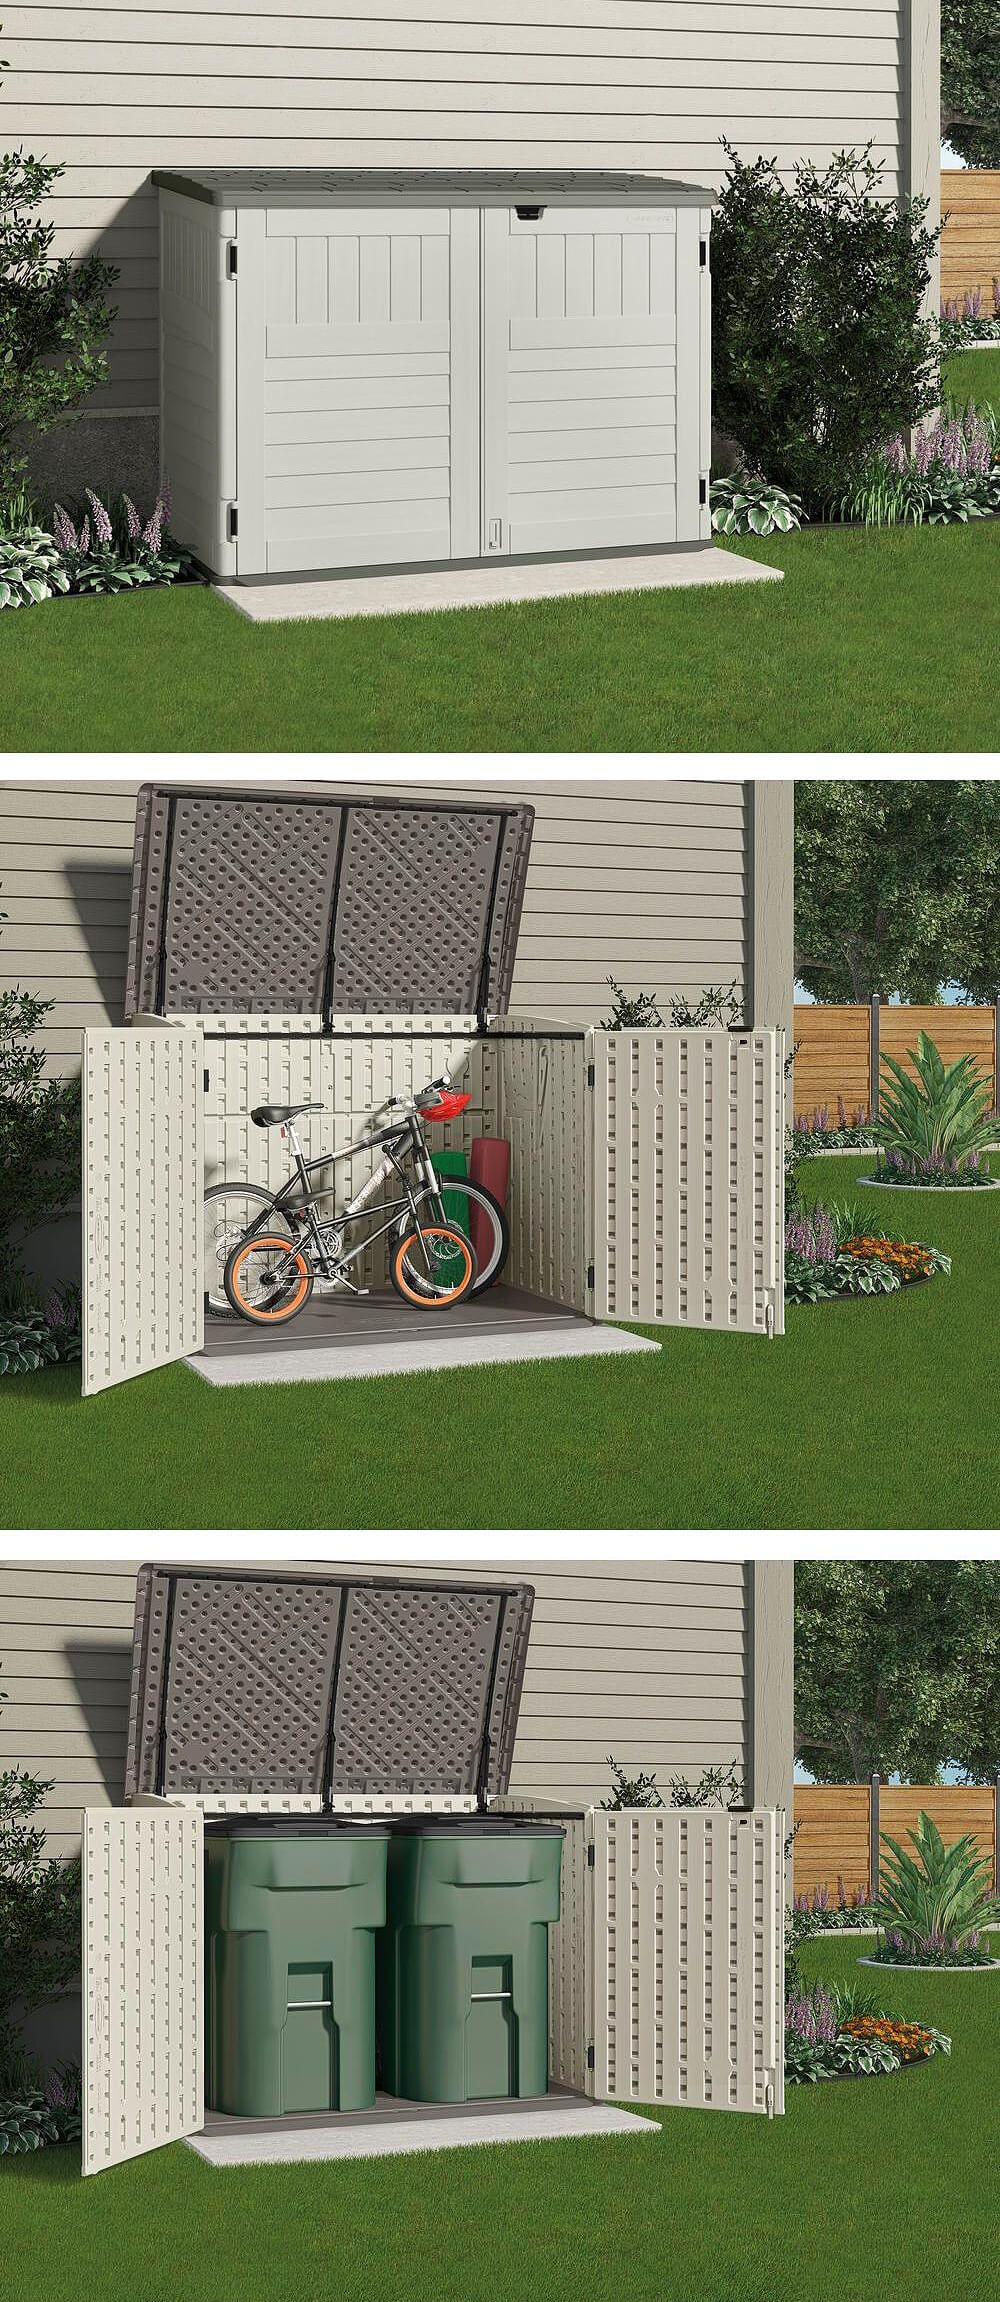 looks baystate for access shed siding solutions sheds shingle is double good brands has preview roof storage easy this personia outdoor vinyl backyard with durable and plus trestle doors